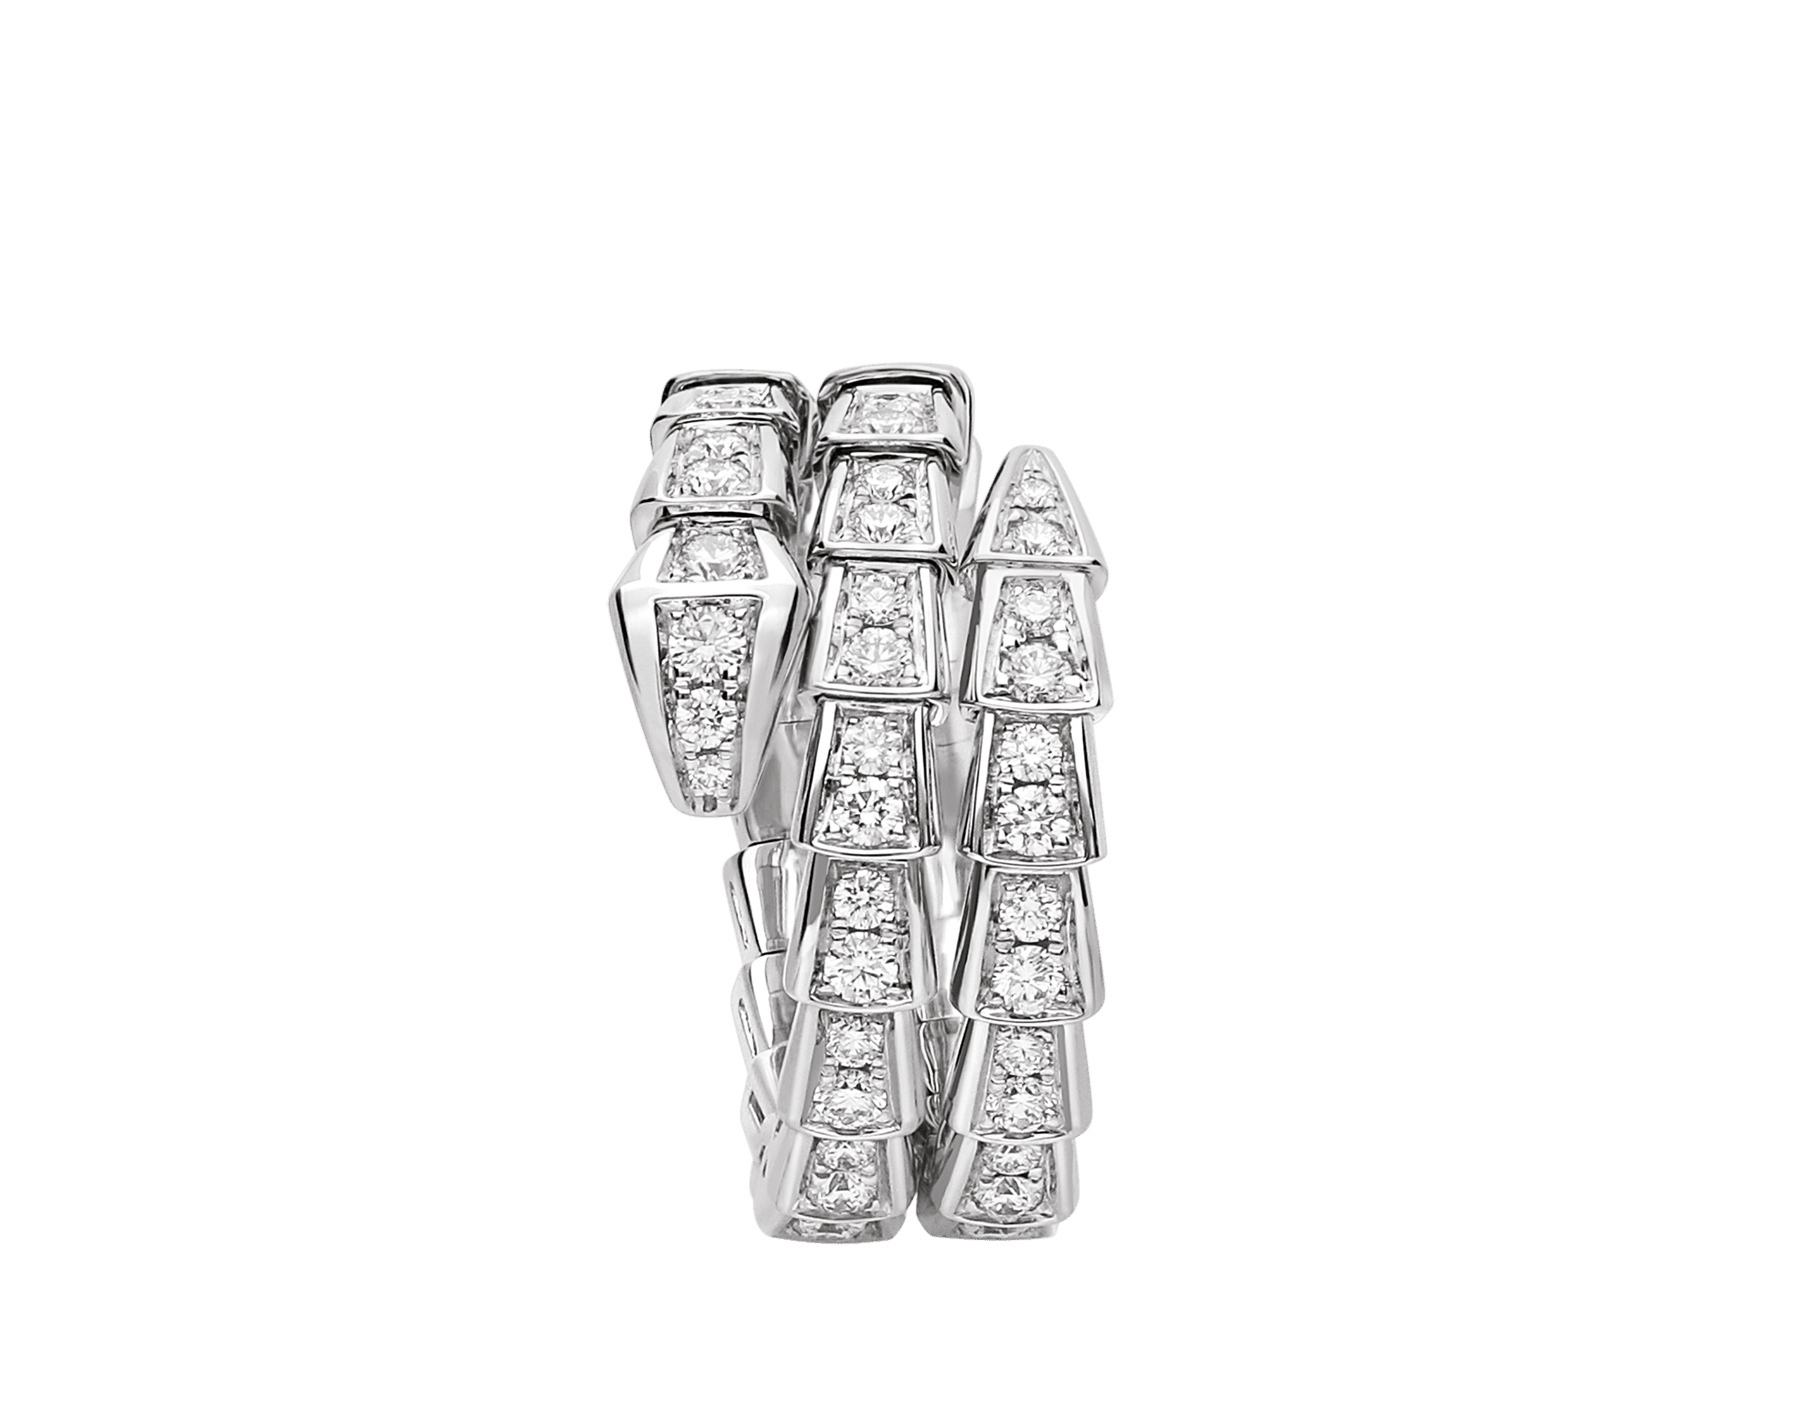 Serpenti Viper two-coil 18 kt white gold ring set with pavé diamonds AN858793 image 2